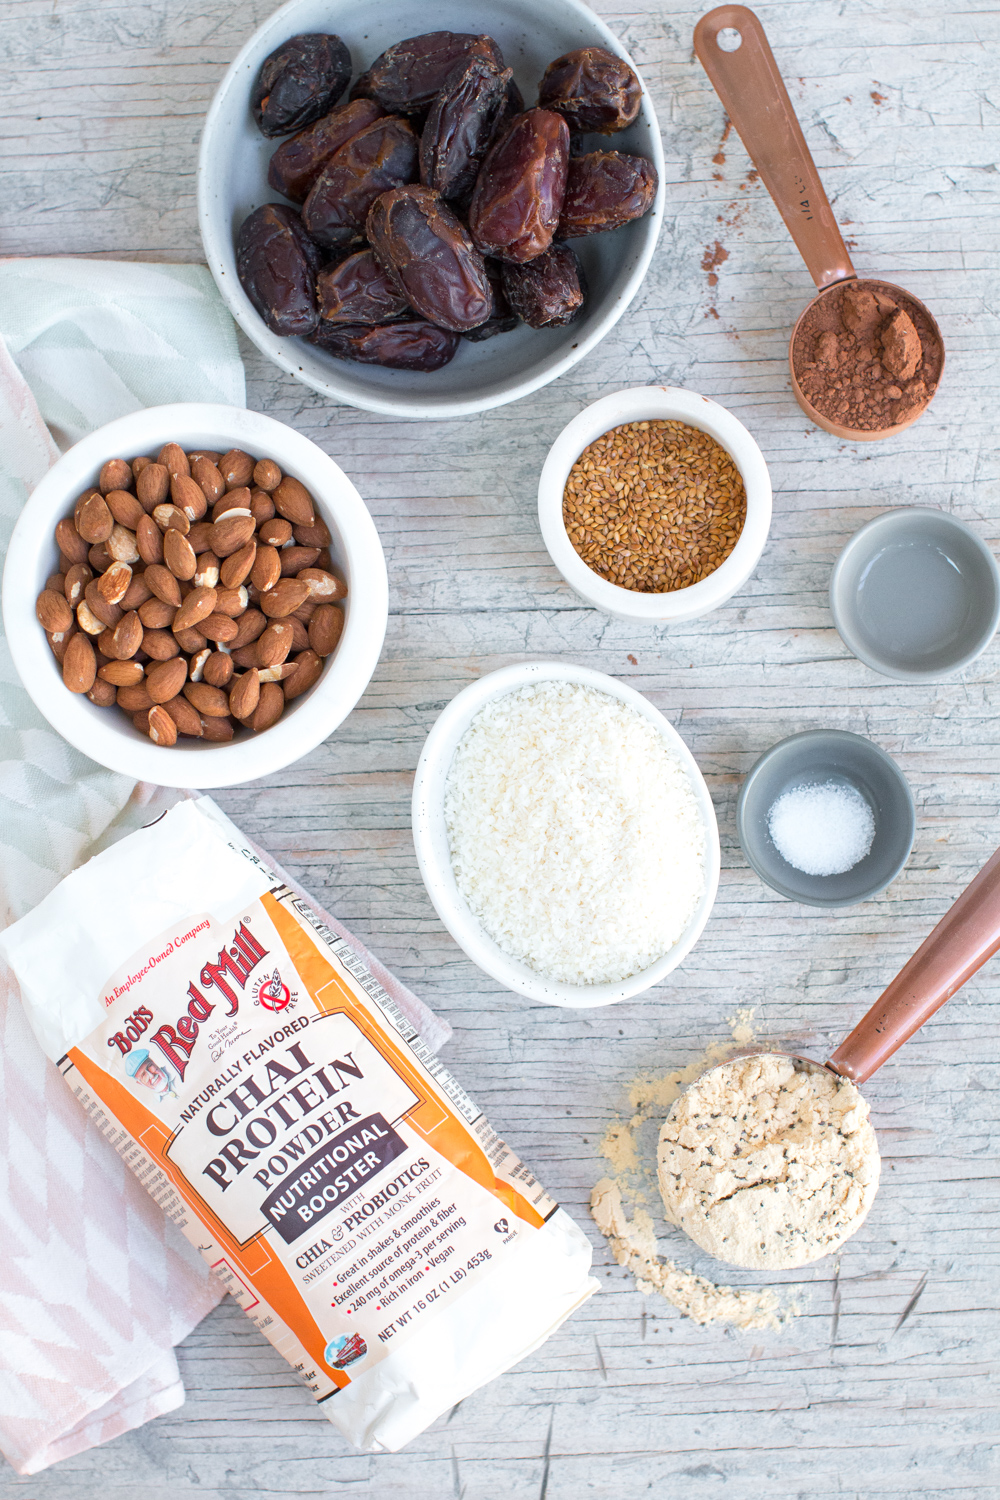 Simple ingredients that are big on flavor and texture make up the Date Almond Coconut Protein Balls